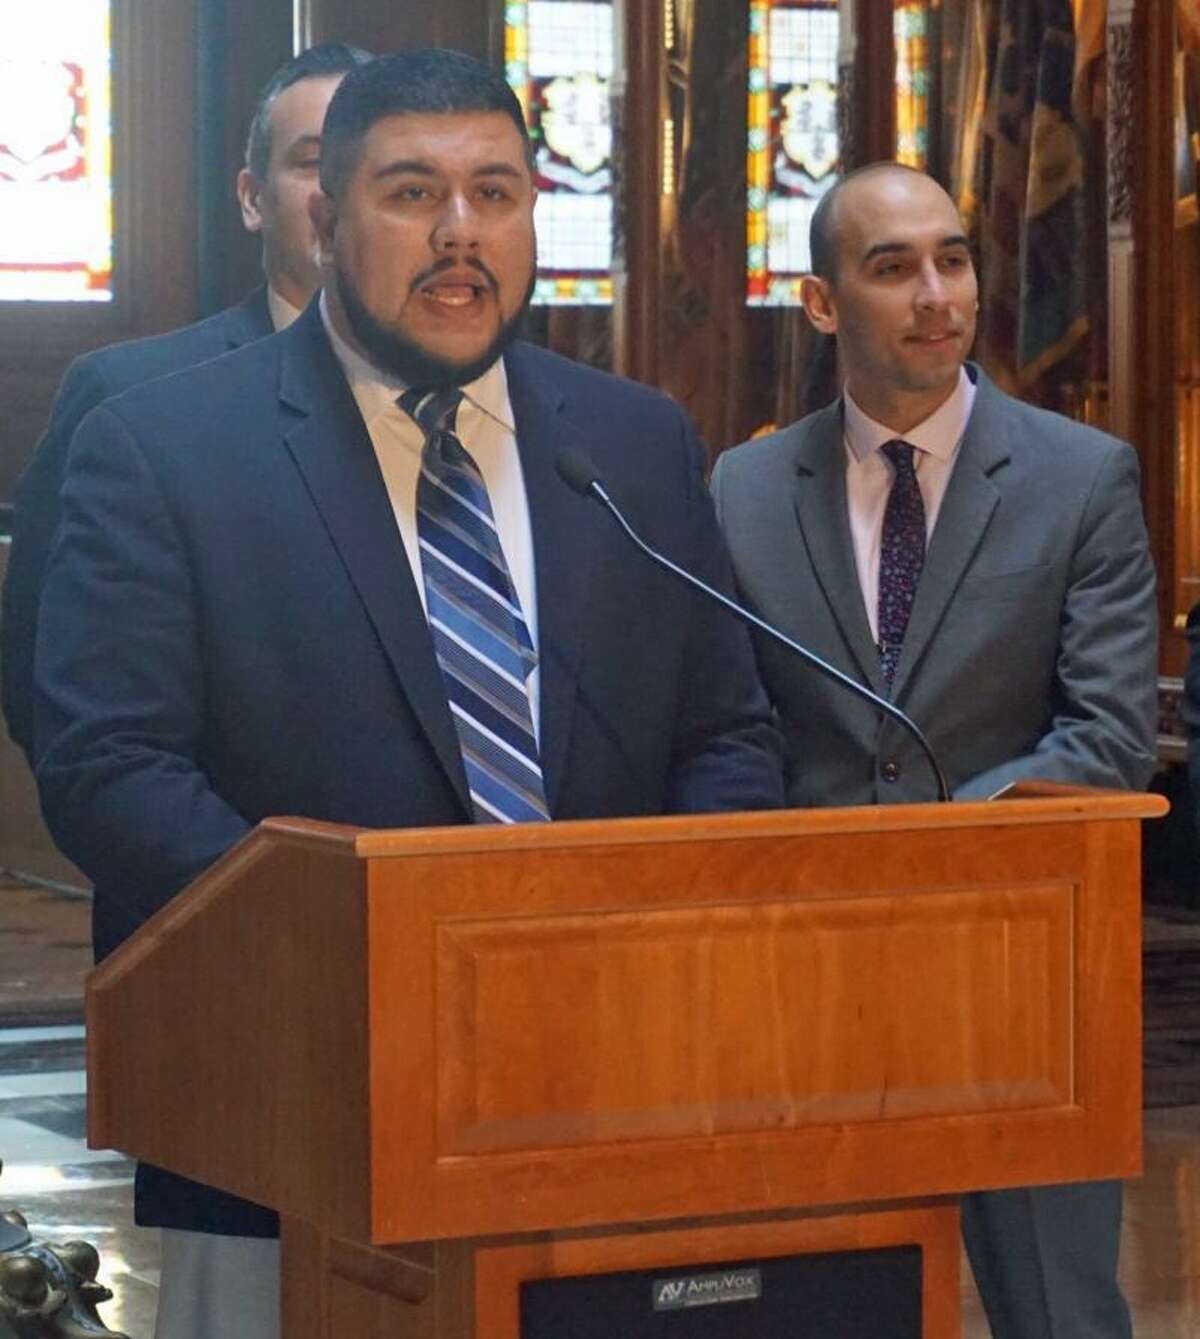 Rep. Christopher Rosario, D-Bridgeport, chair of the Black and Puerto Rican Caucus, outlined the caucus's legislative priorities at the Capitol in Hartford, Conn. on Monday, March 12, 2018.